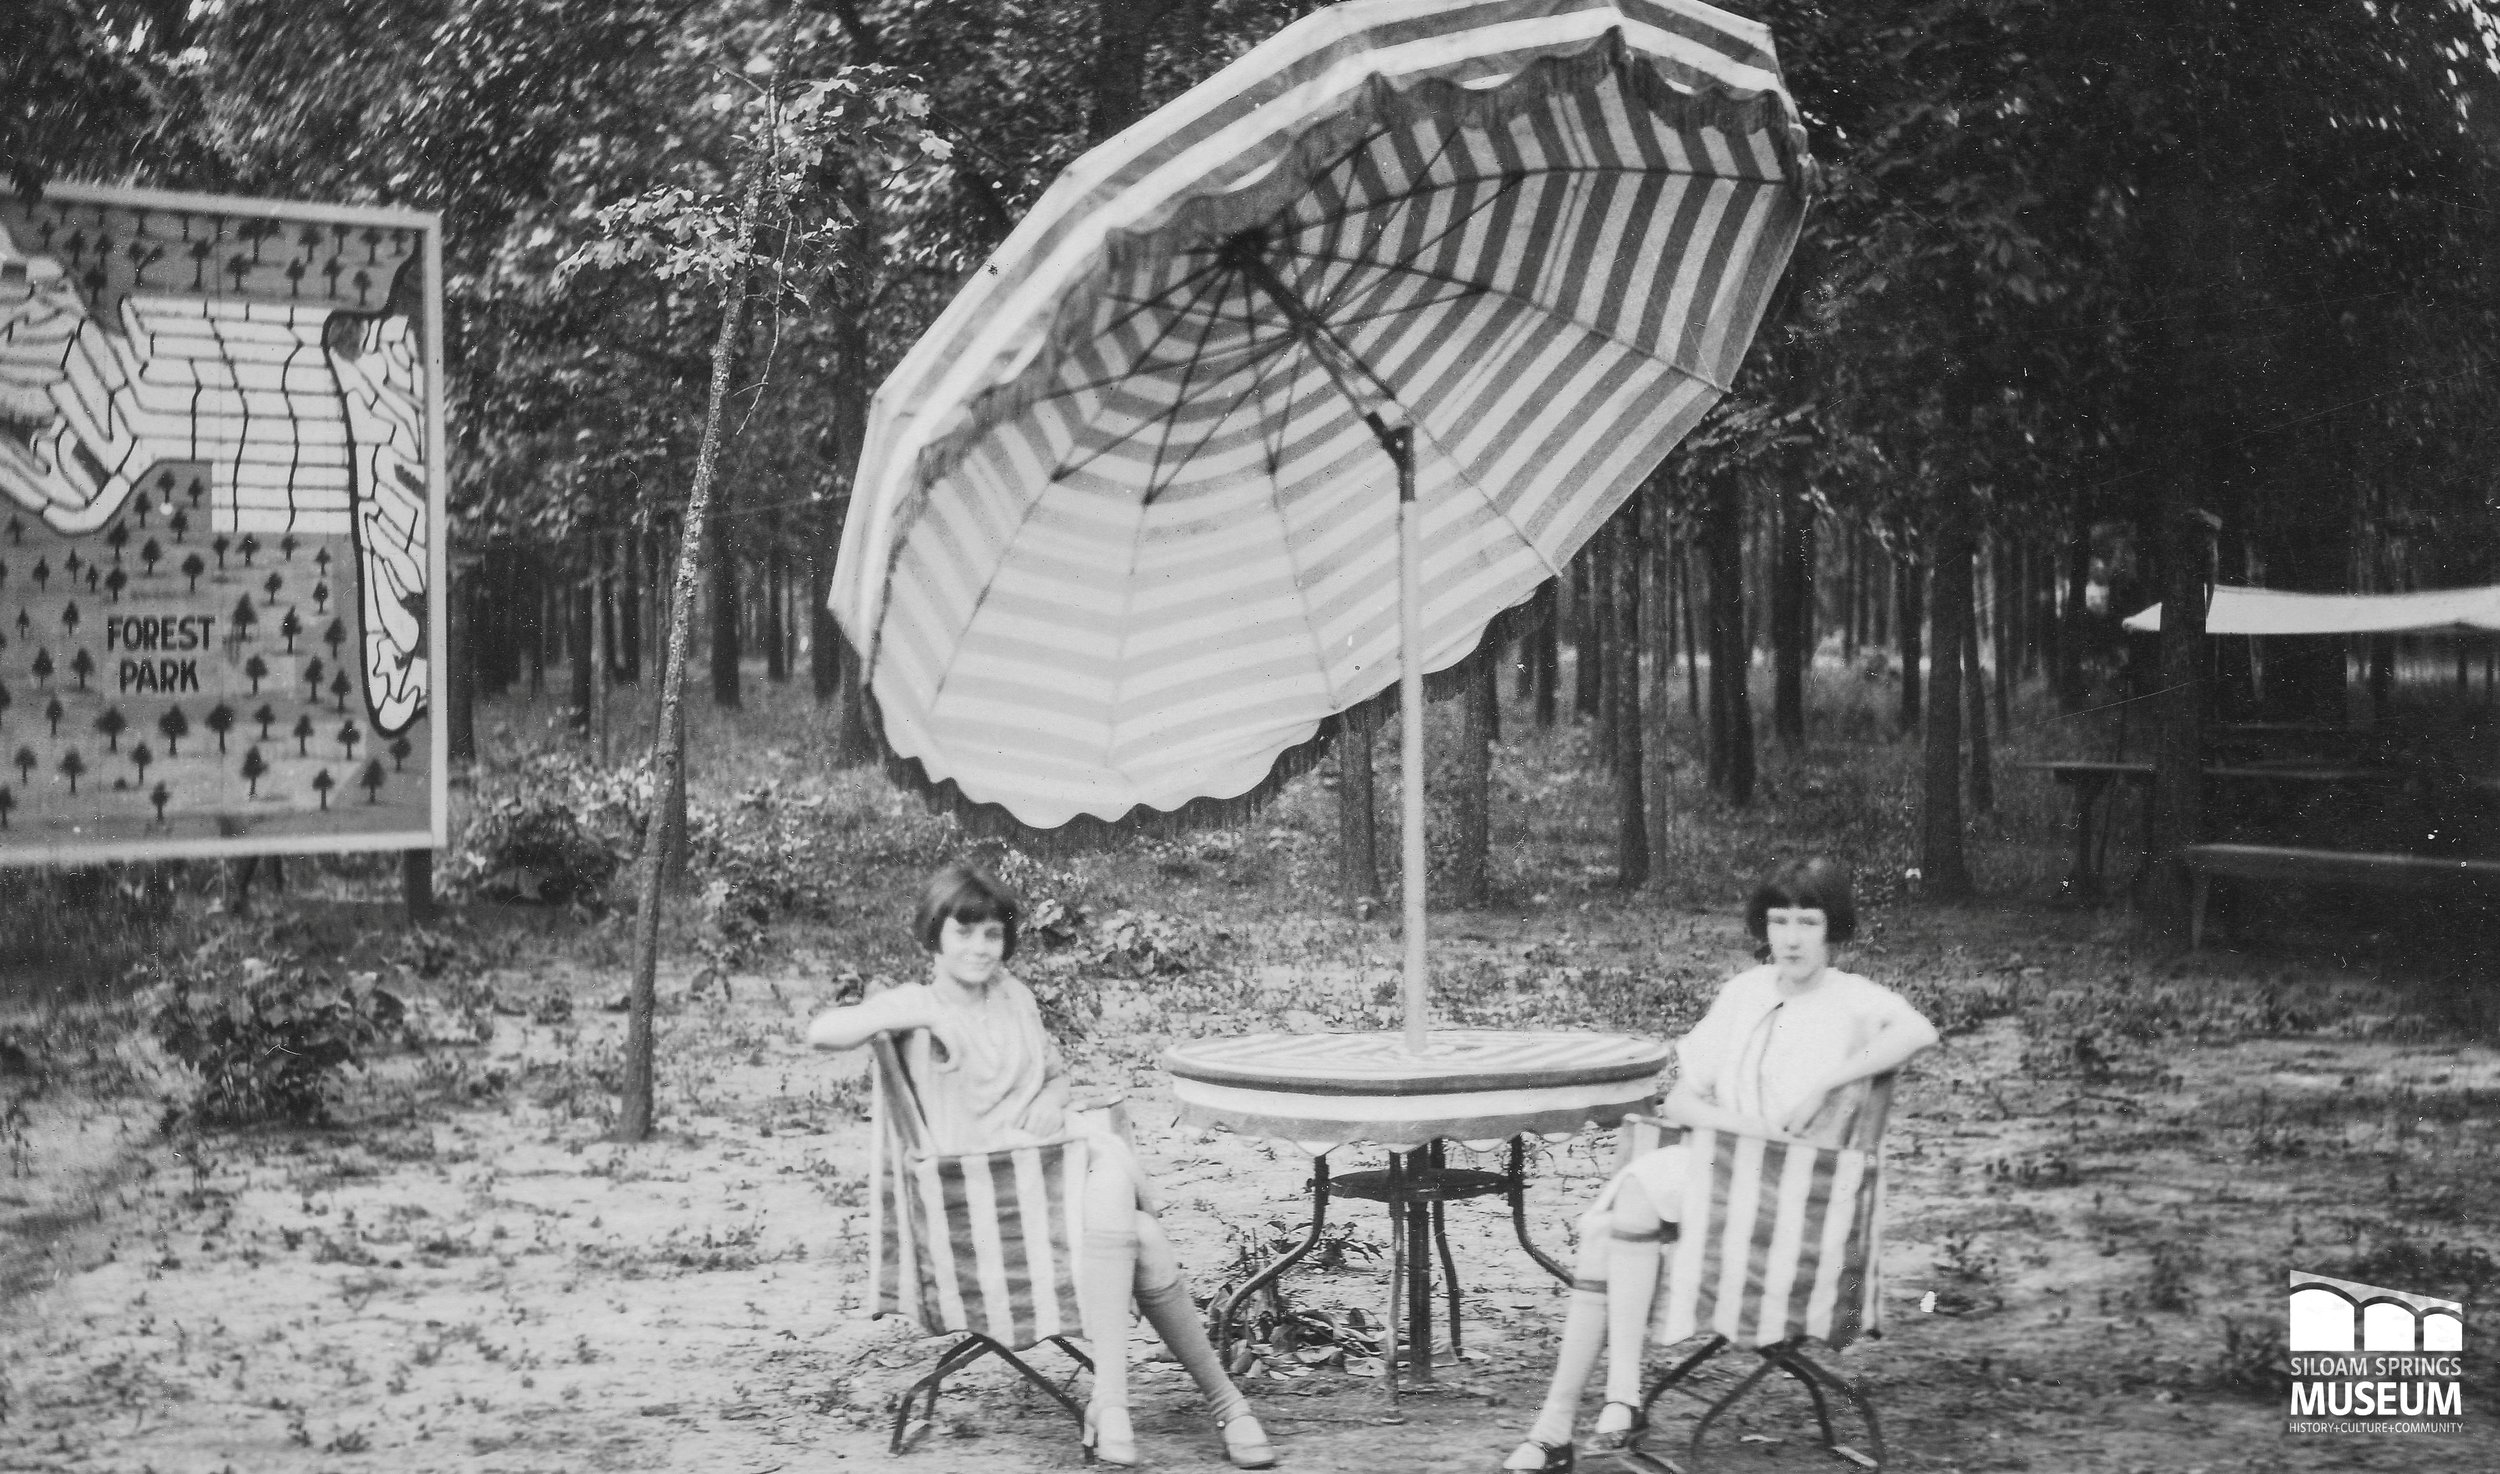 Two women sit at Forest Park's outdoor dining facilities.